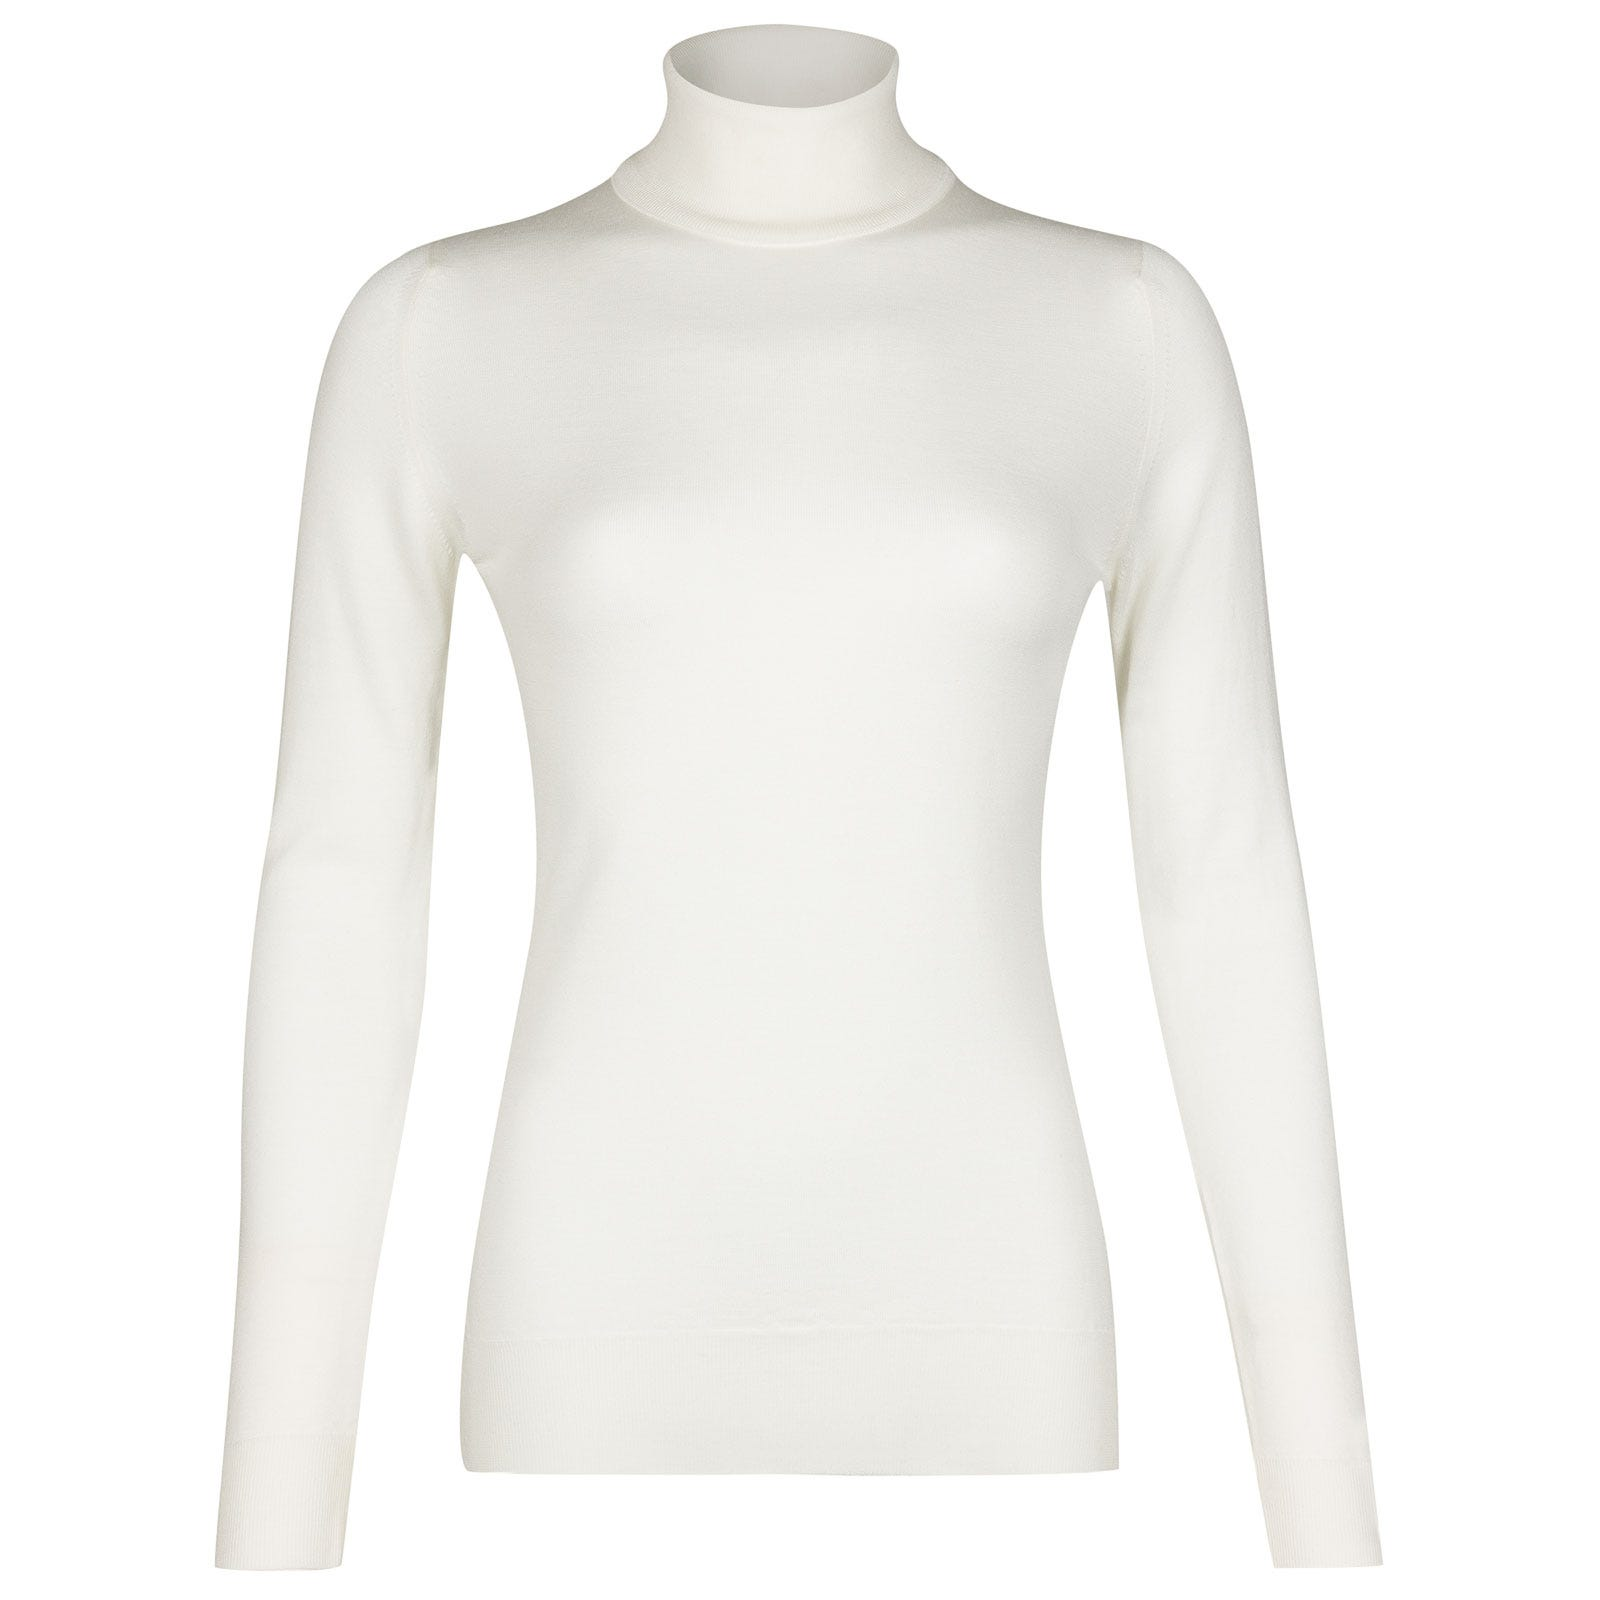 John Smedley Catkin Merino Wool Sweater in Snow White-XL